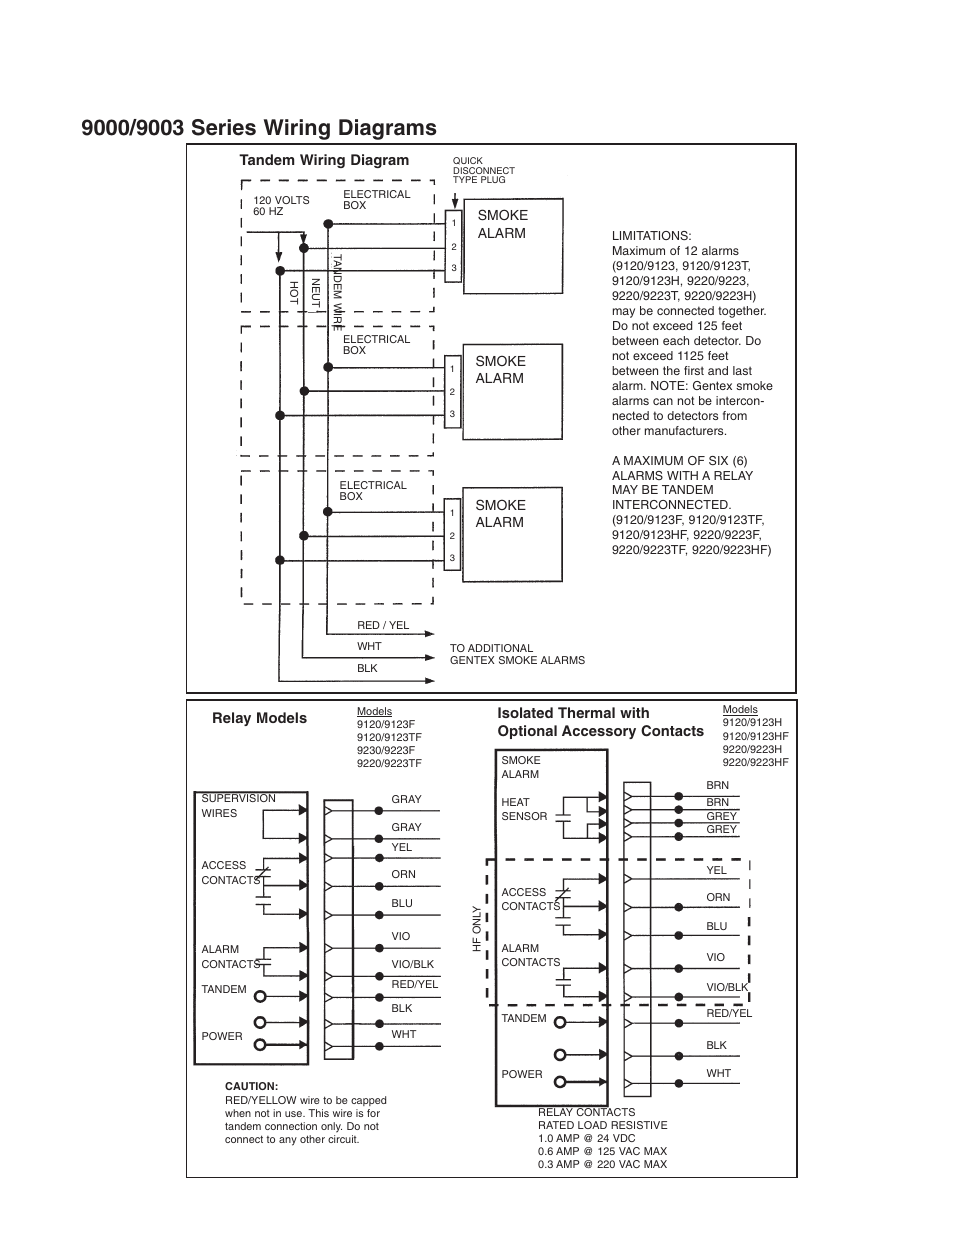 smoke alarm  tandem wiring diagram relay models  isolated